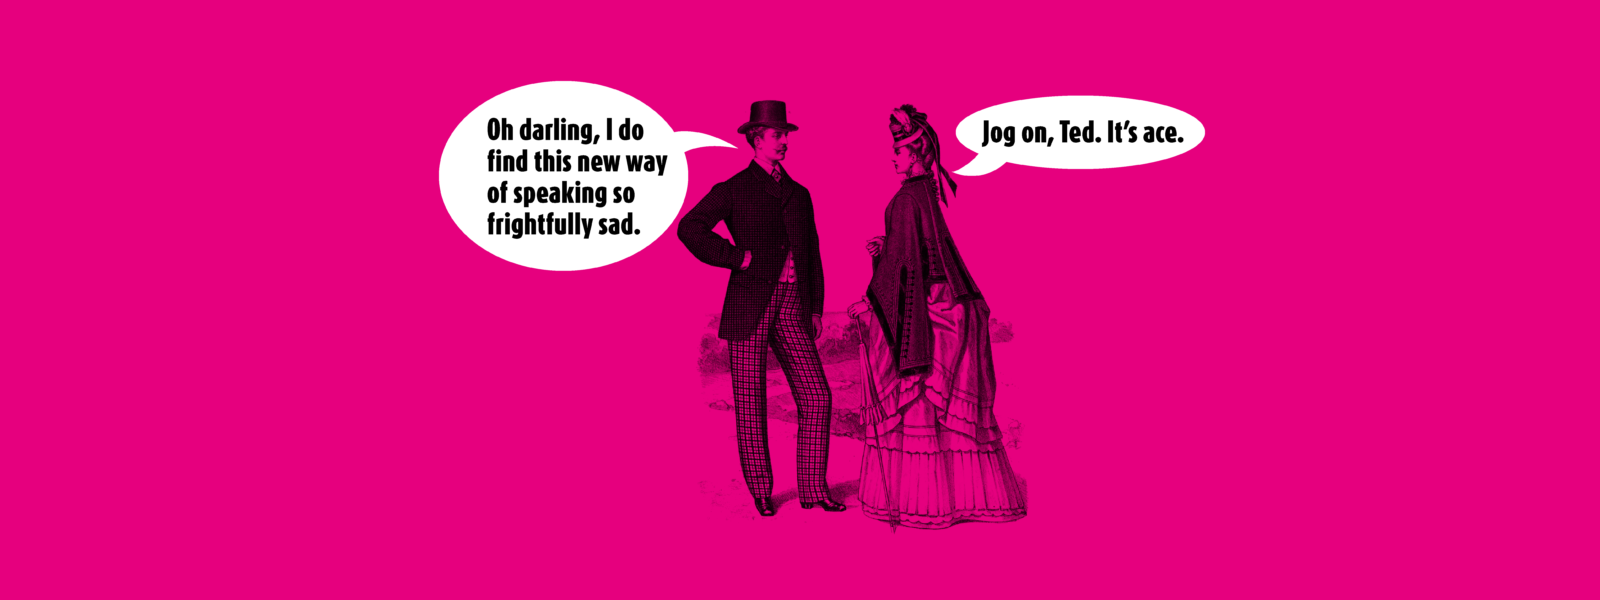 Old-fashioned couple talking about modern language